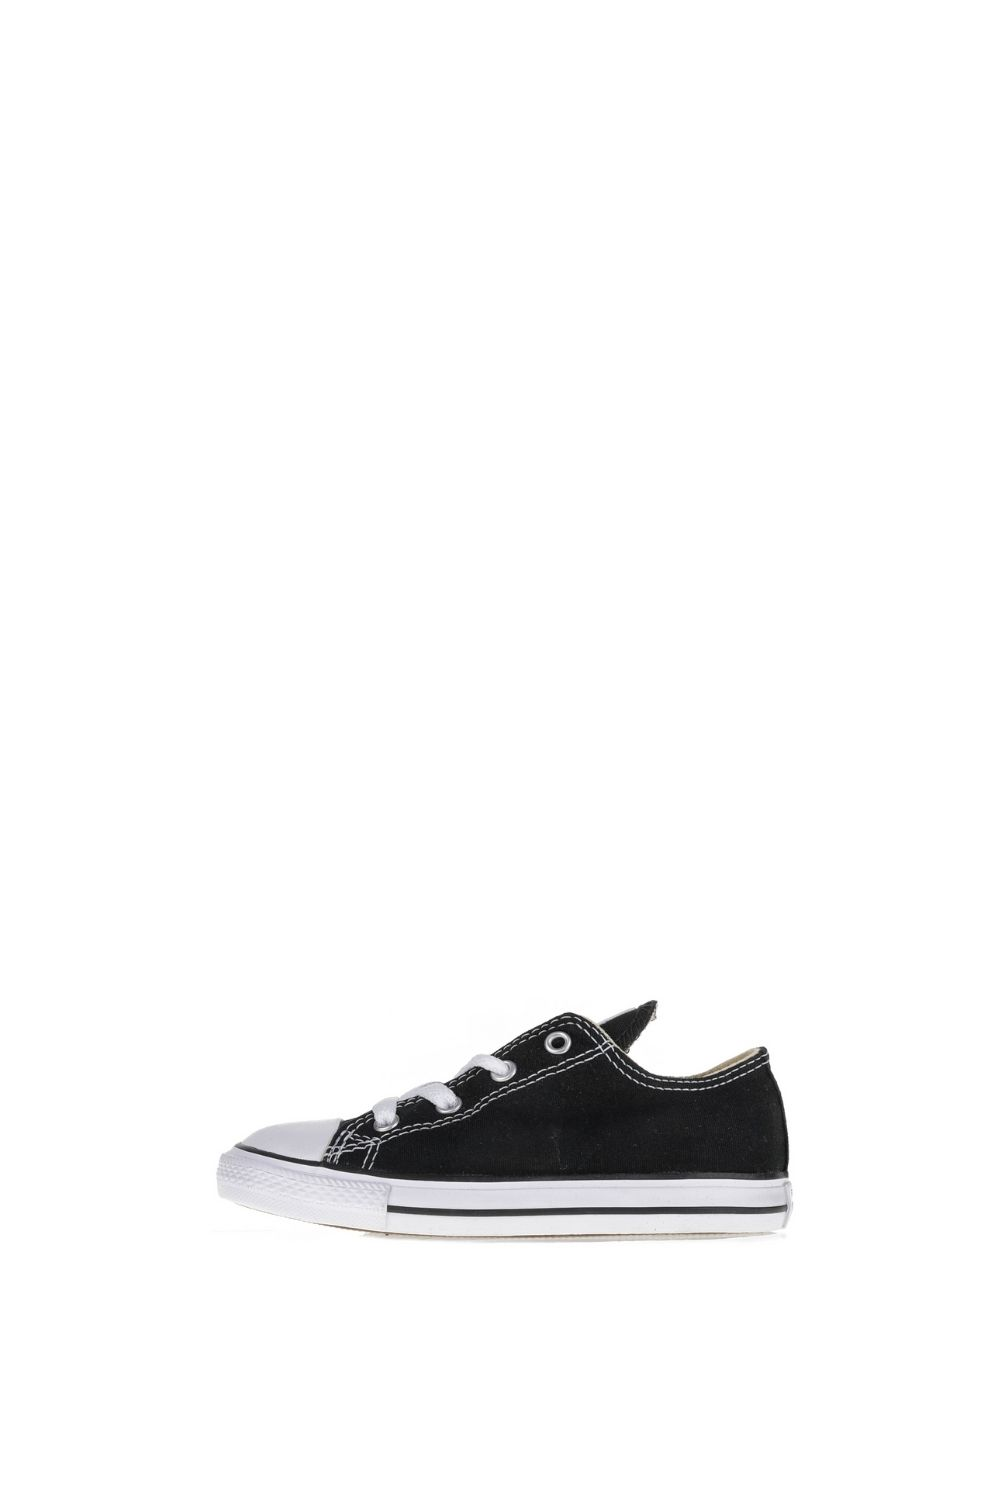 CONVERSE – Βρεφικά sneakers CONVERSE Chuck Taylor All Star II μαύρα